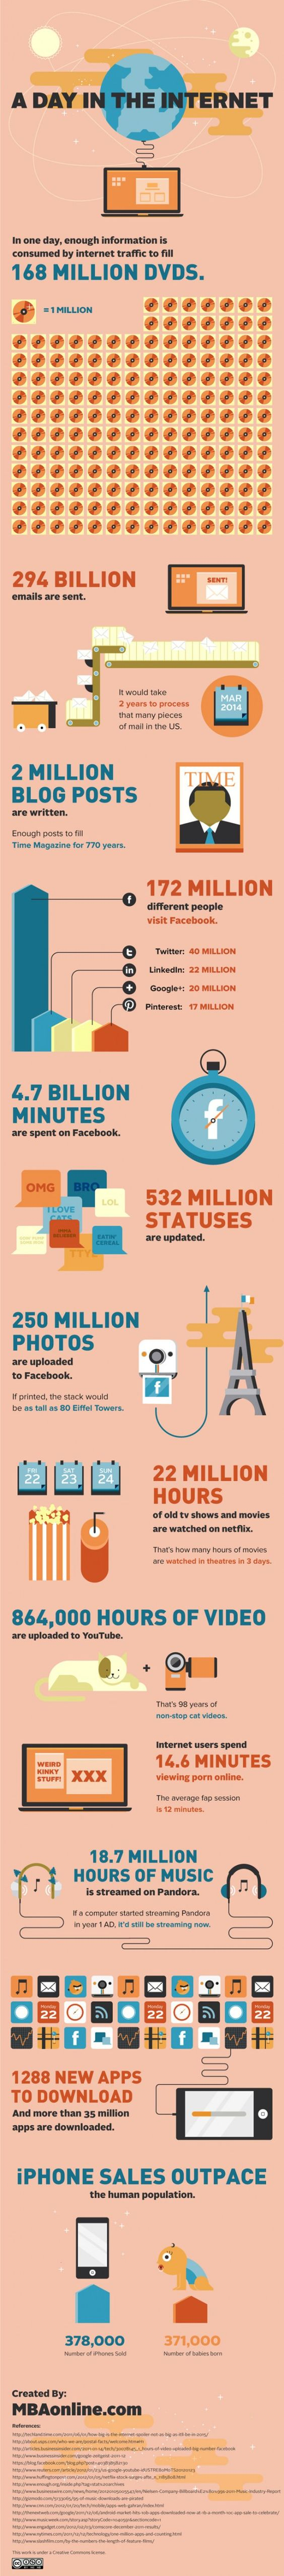 A day in the internet in numbers. Pretty impressive. (c) MBAonline.com: